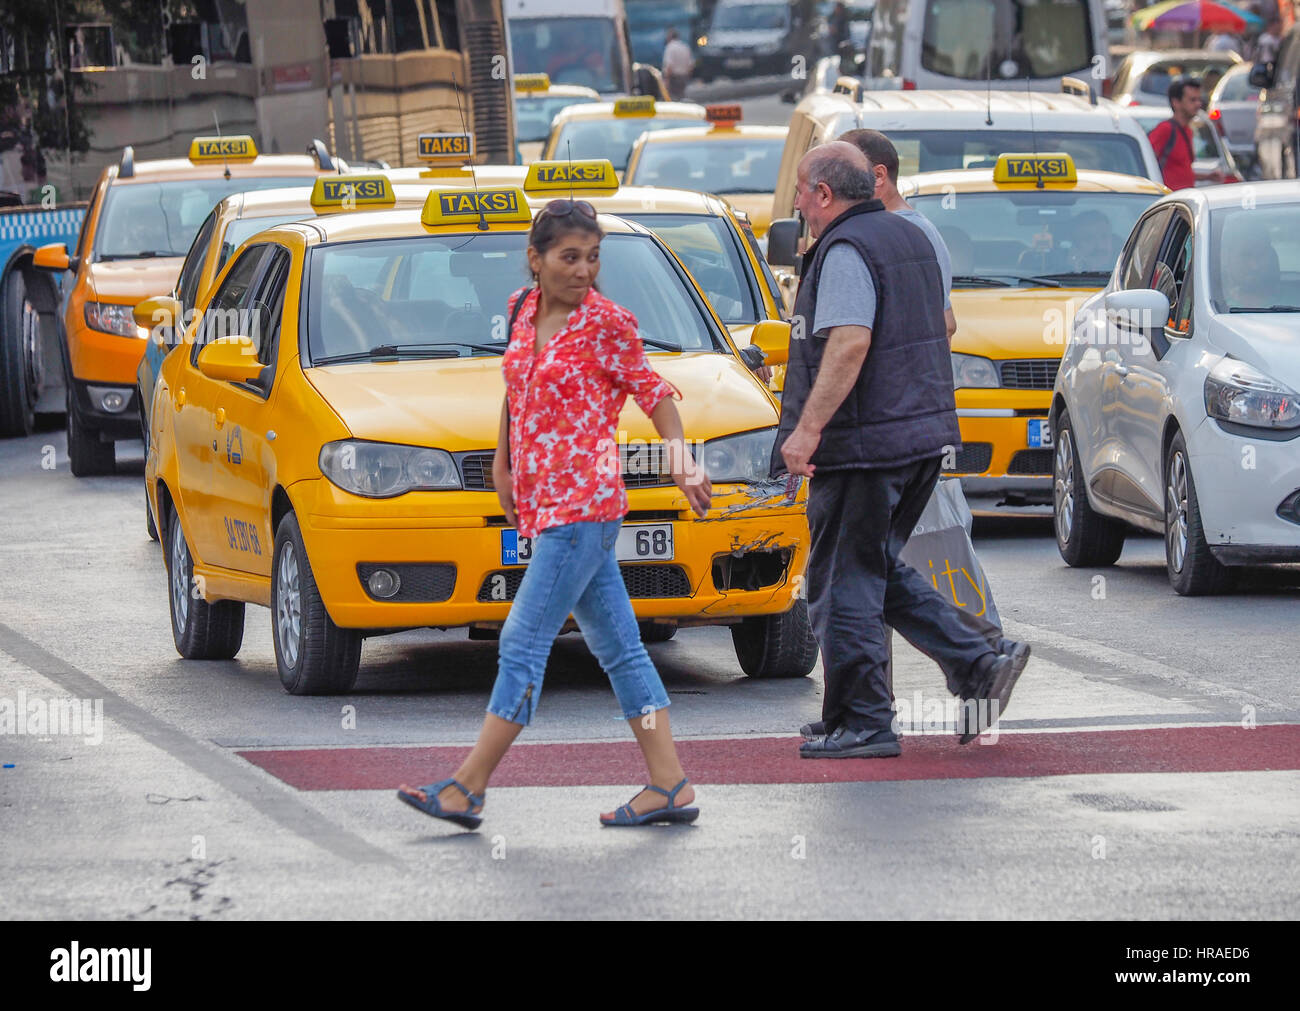 Taxis in traffic, Istanbul (western side) Turkey Stock Photo